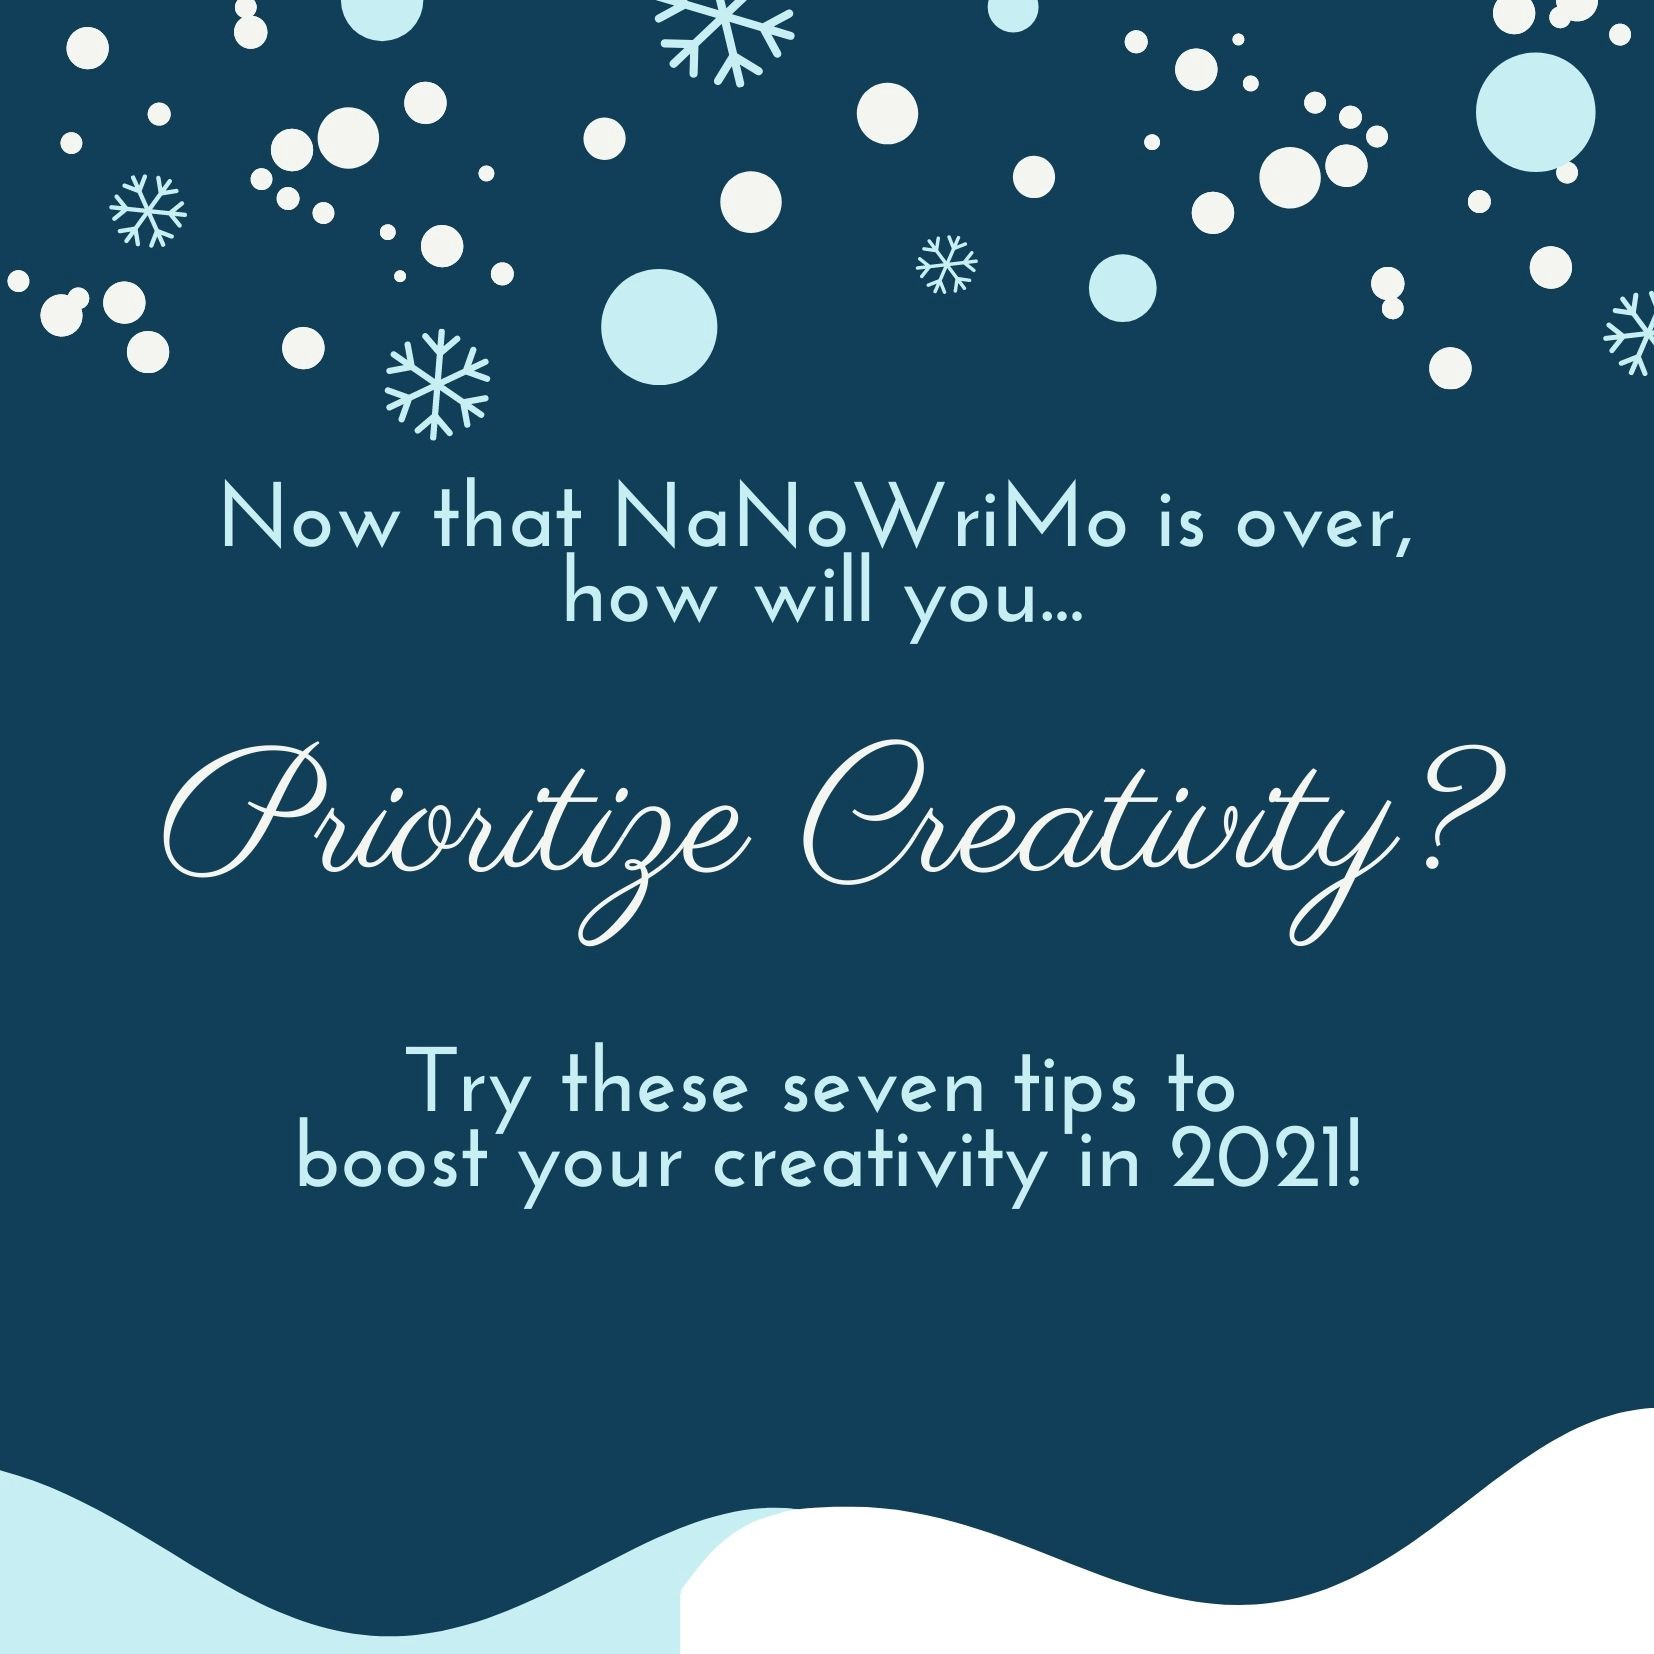 Now that NaNoWriMo is over, how will you prioritize creativity in 2021?